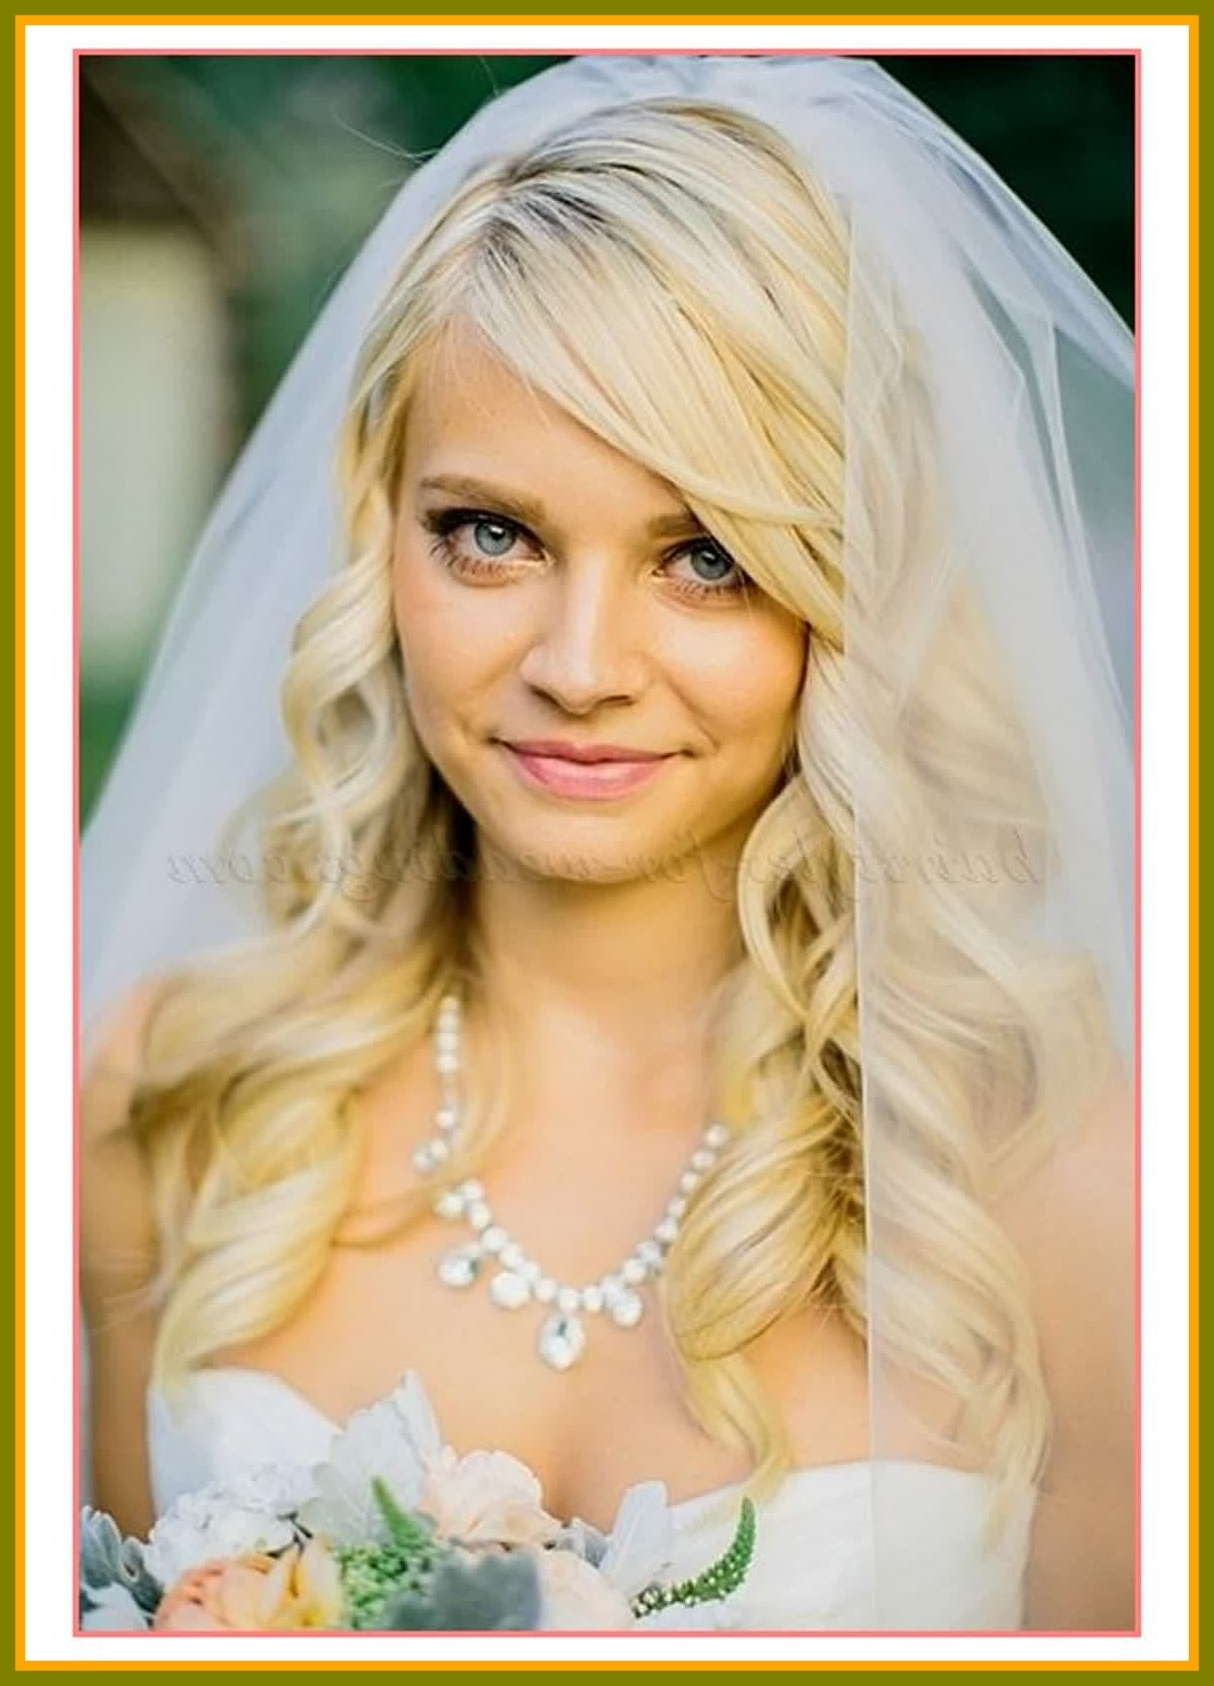 Recent Wedding Hairstyles For Medium Length Hair With Veil Pertaining To Incredible Best Ideas Wedding Hairstyles Medium Length Hair Veil (View 9 of 15)